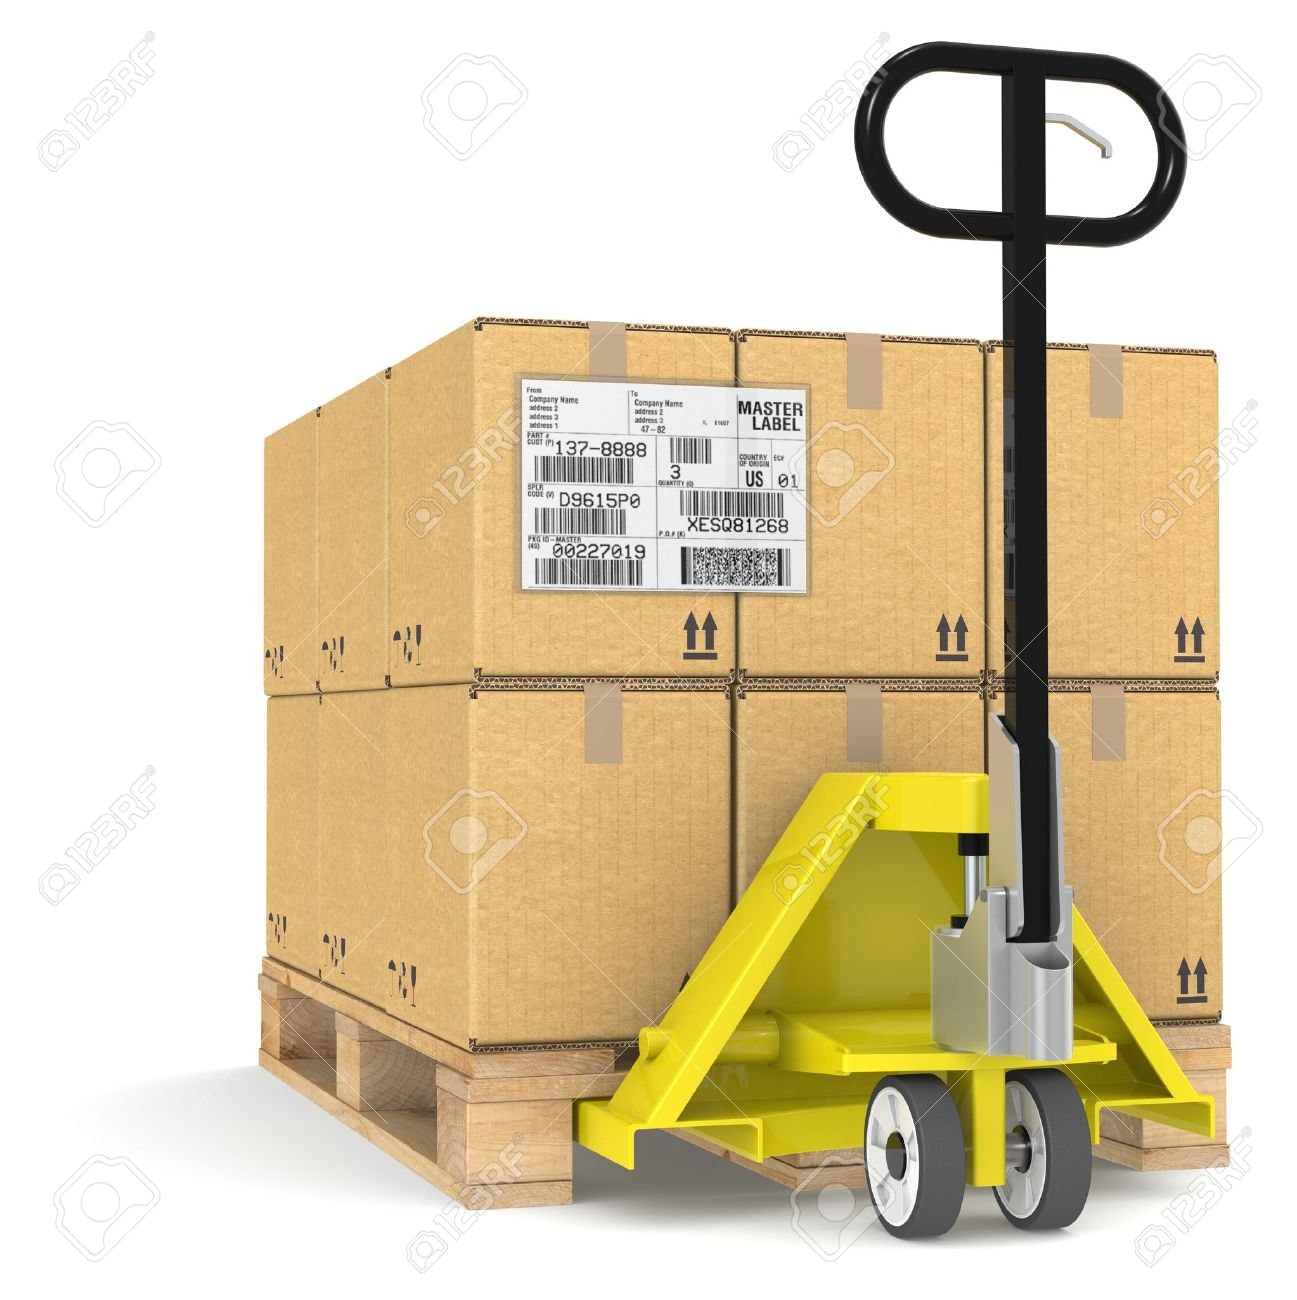 pallet truck jack and a pallet cardboard boxes sample edi pallet truck jack and a pallet cardboard boxes sample edi label stock photo